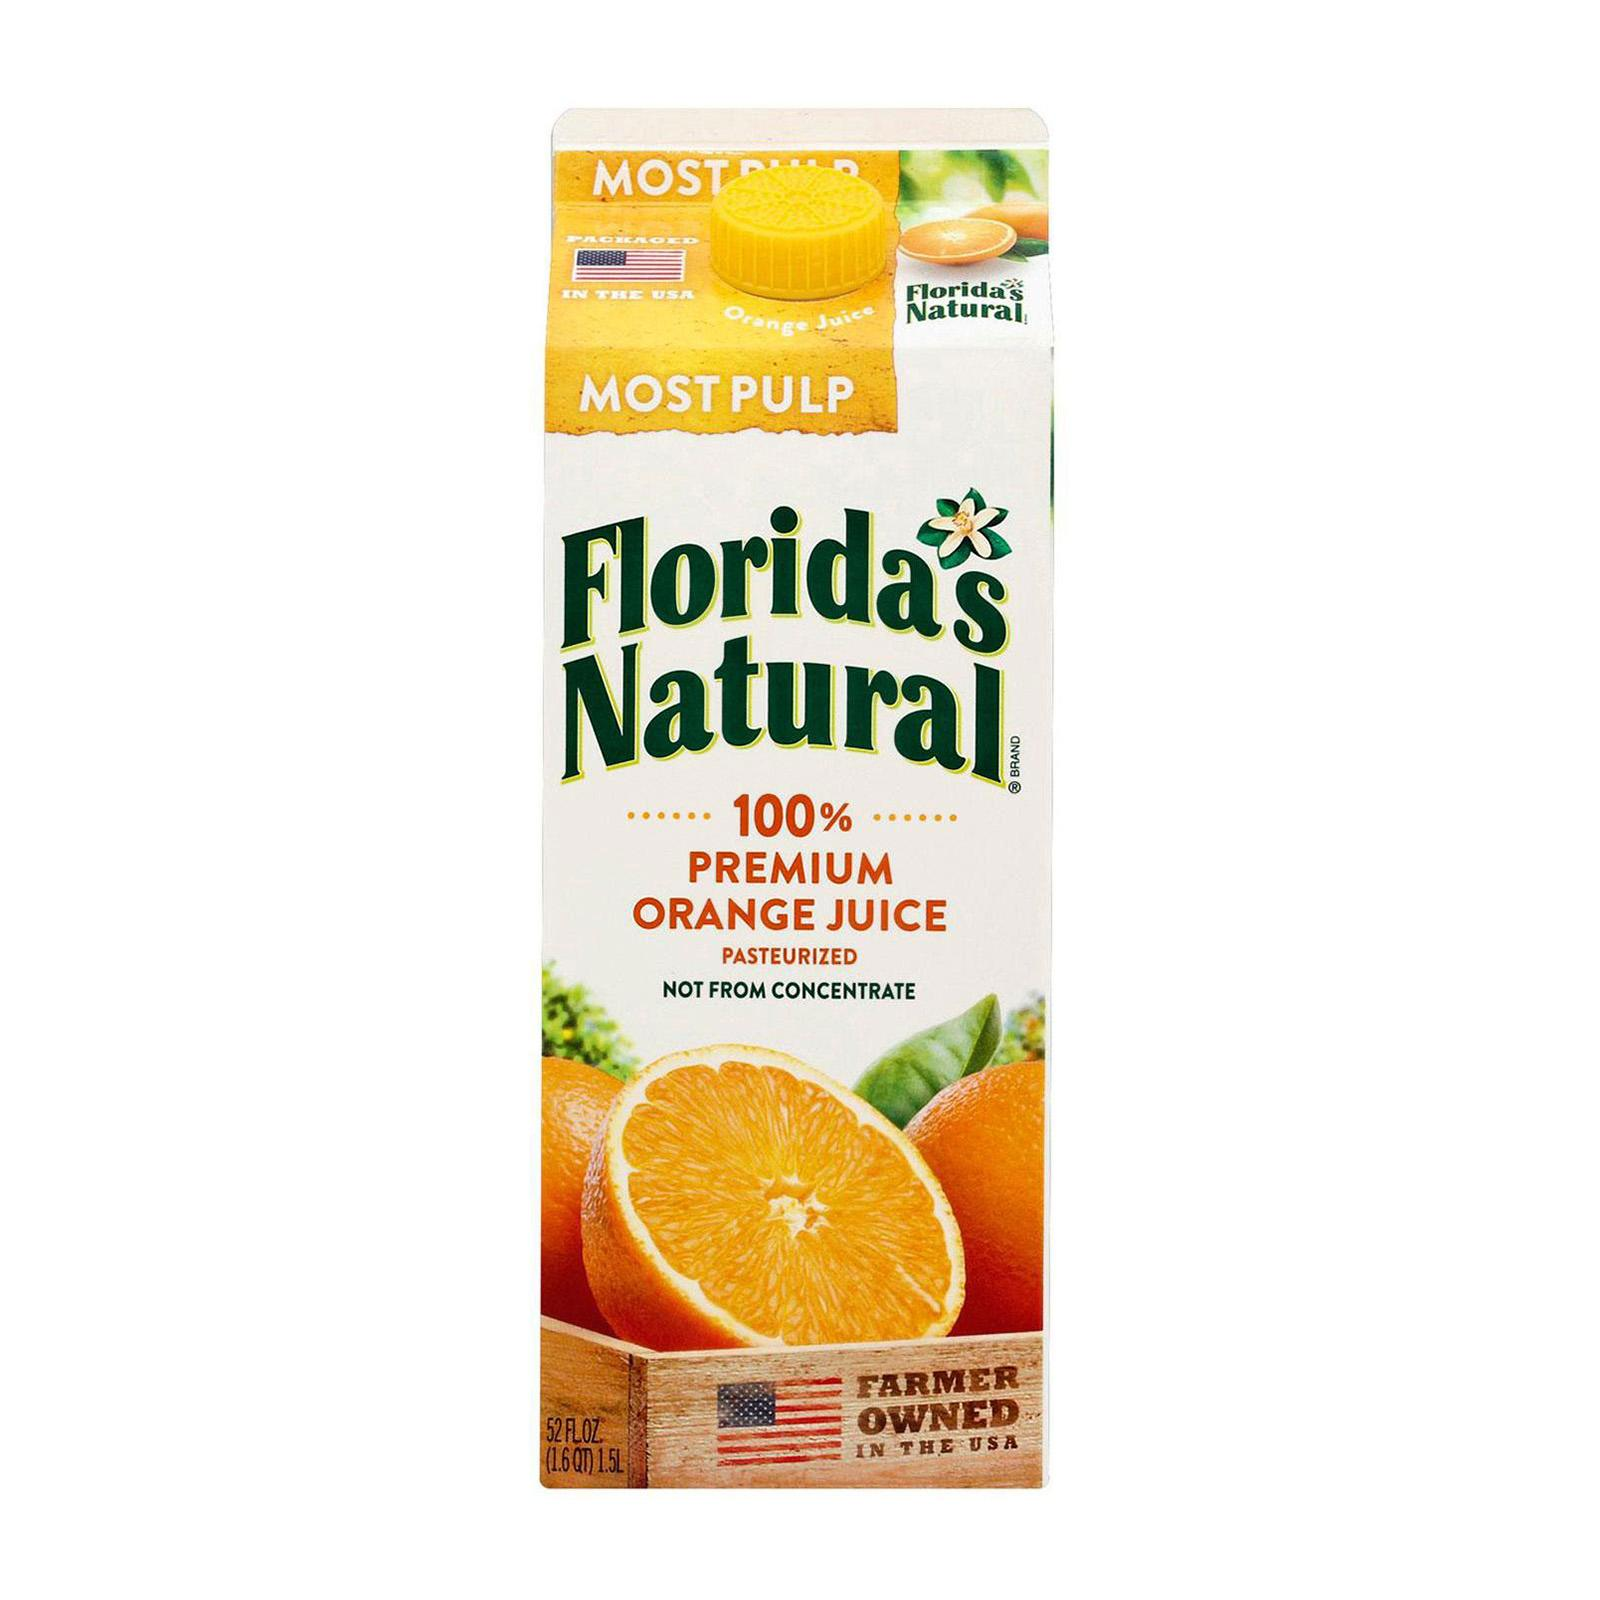 Florida's Natural NFC Growers Style (Most Pulp) Orange Juice